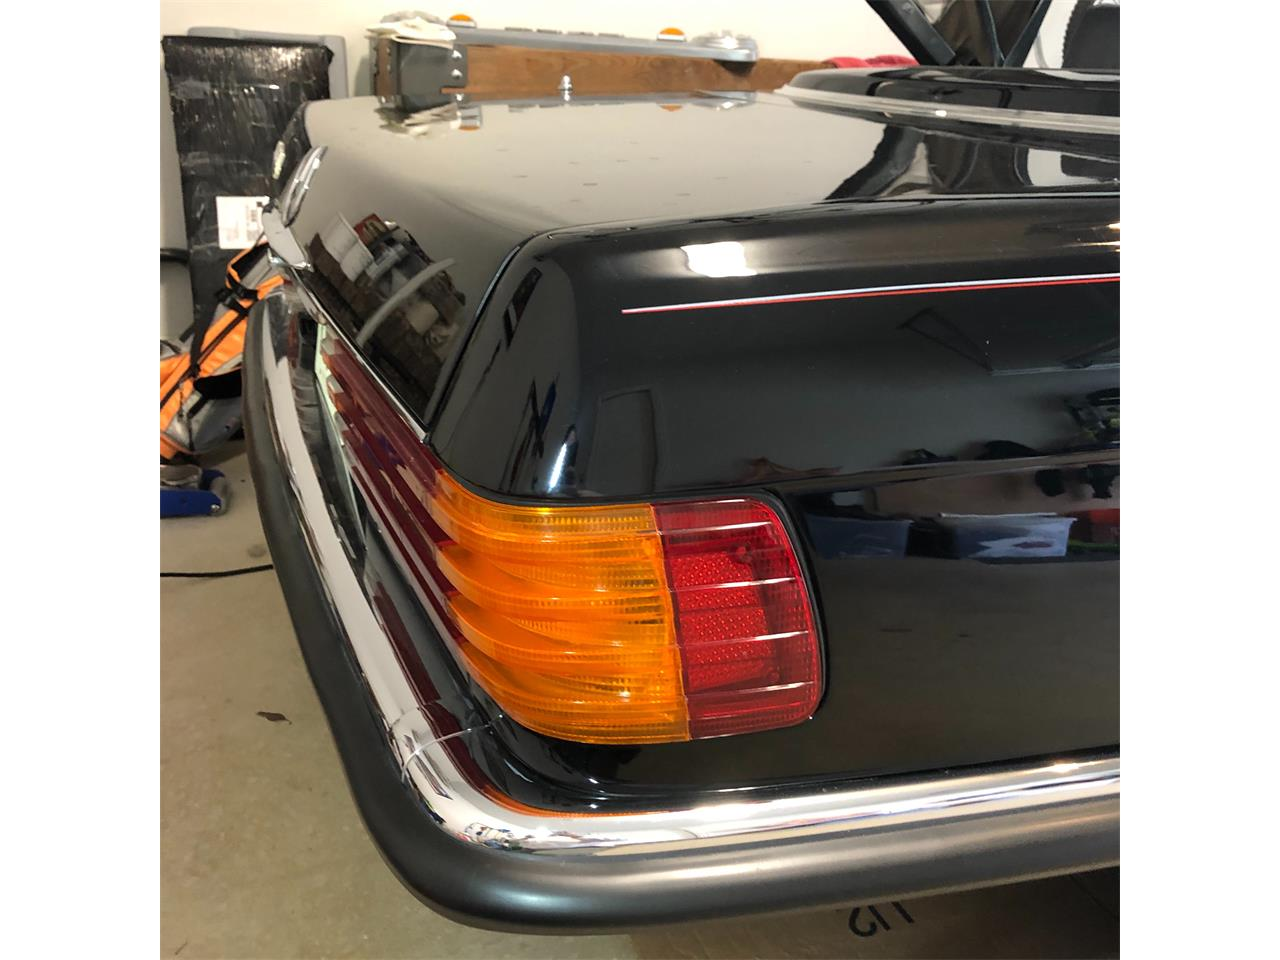 Large Picture of '85 Mercedes-Benz 500SL located in Richardson Texas - $25,550.00 Offered by a Private Seller - P661